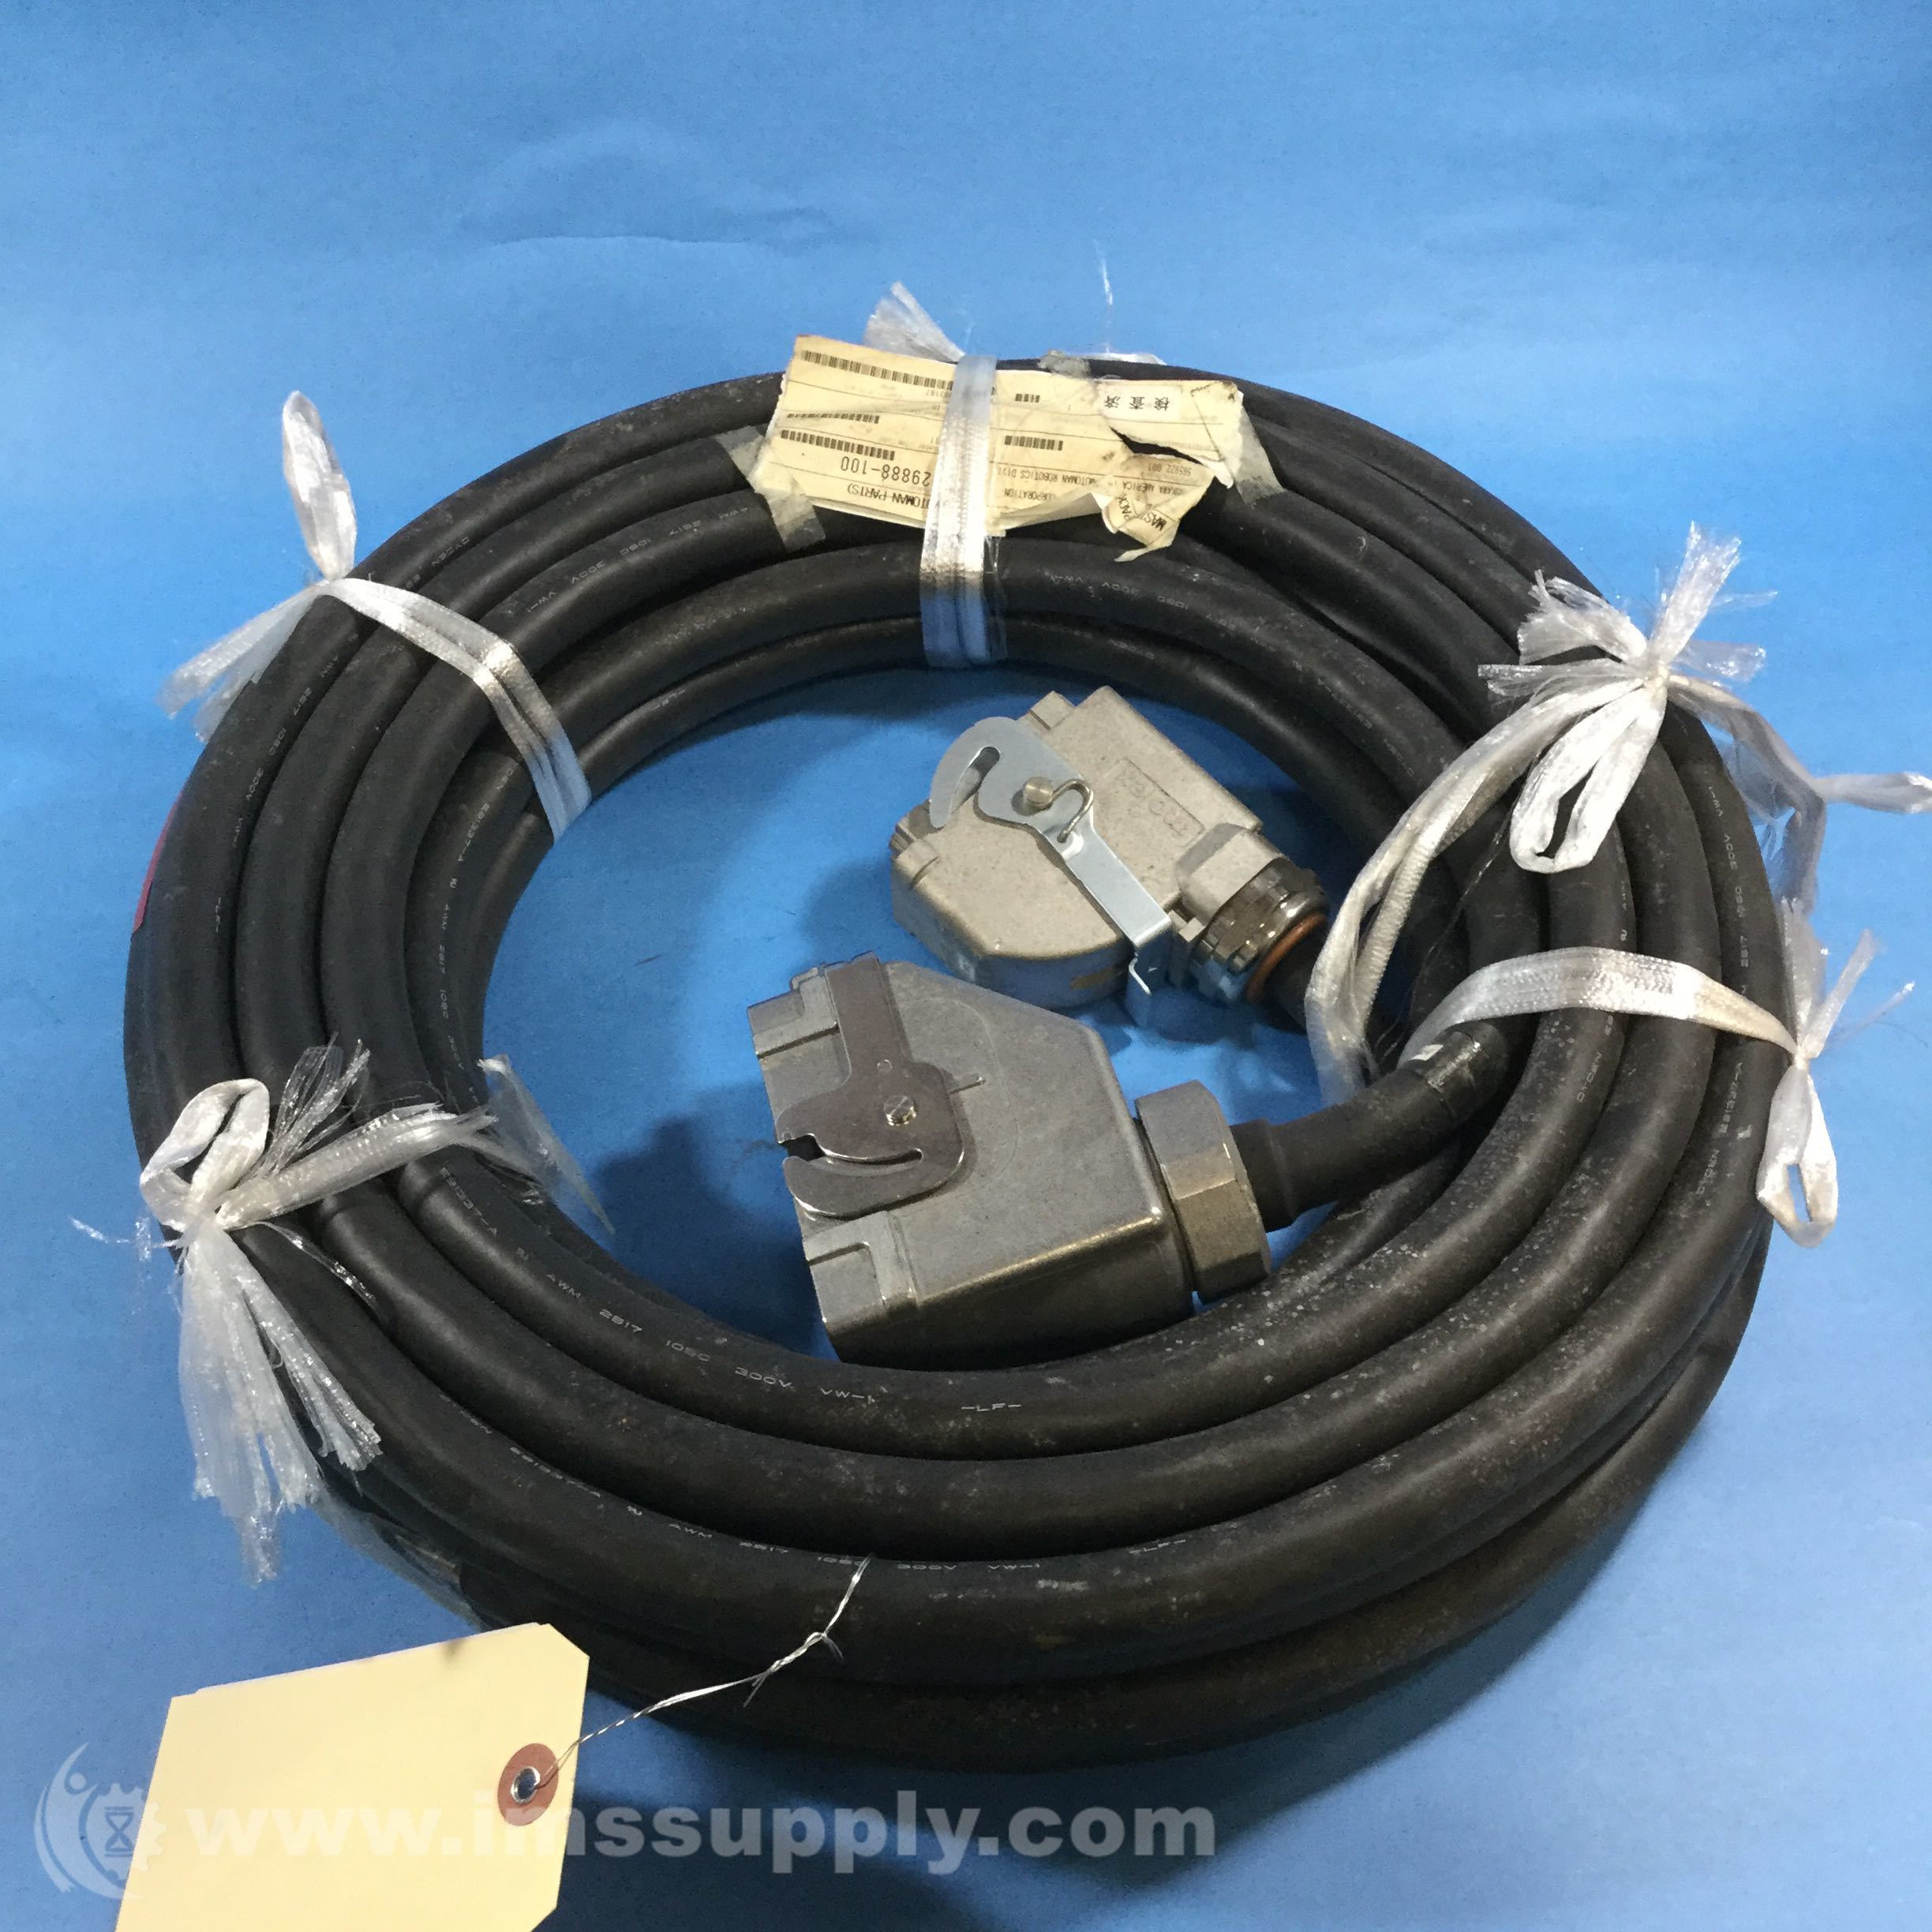 Astonishing Motoman Hw1270301 15 Robot Wiring Harness Cable Ims Supply Wiring Cloud Brecesaoduqqnet